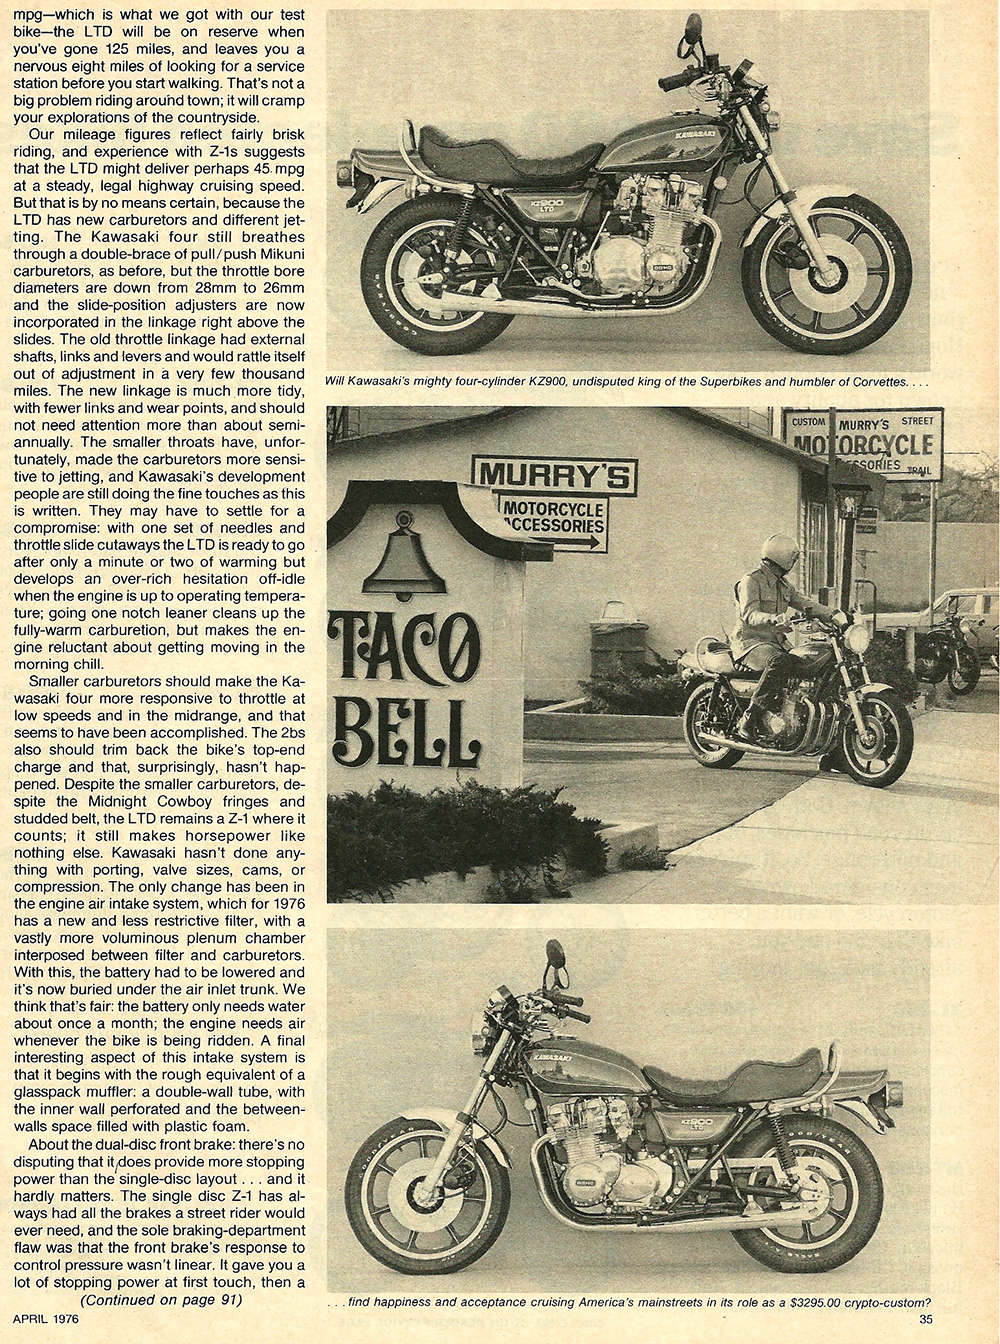 1976 Kawasaki KZ900 LTD road test 6.jpg